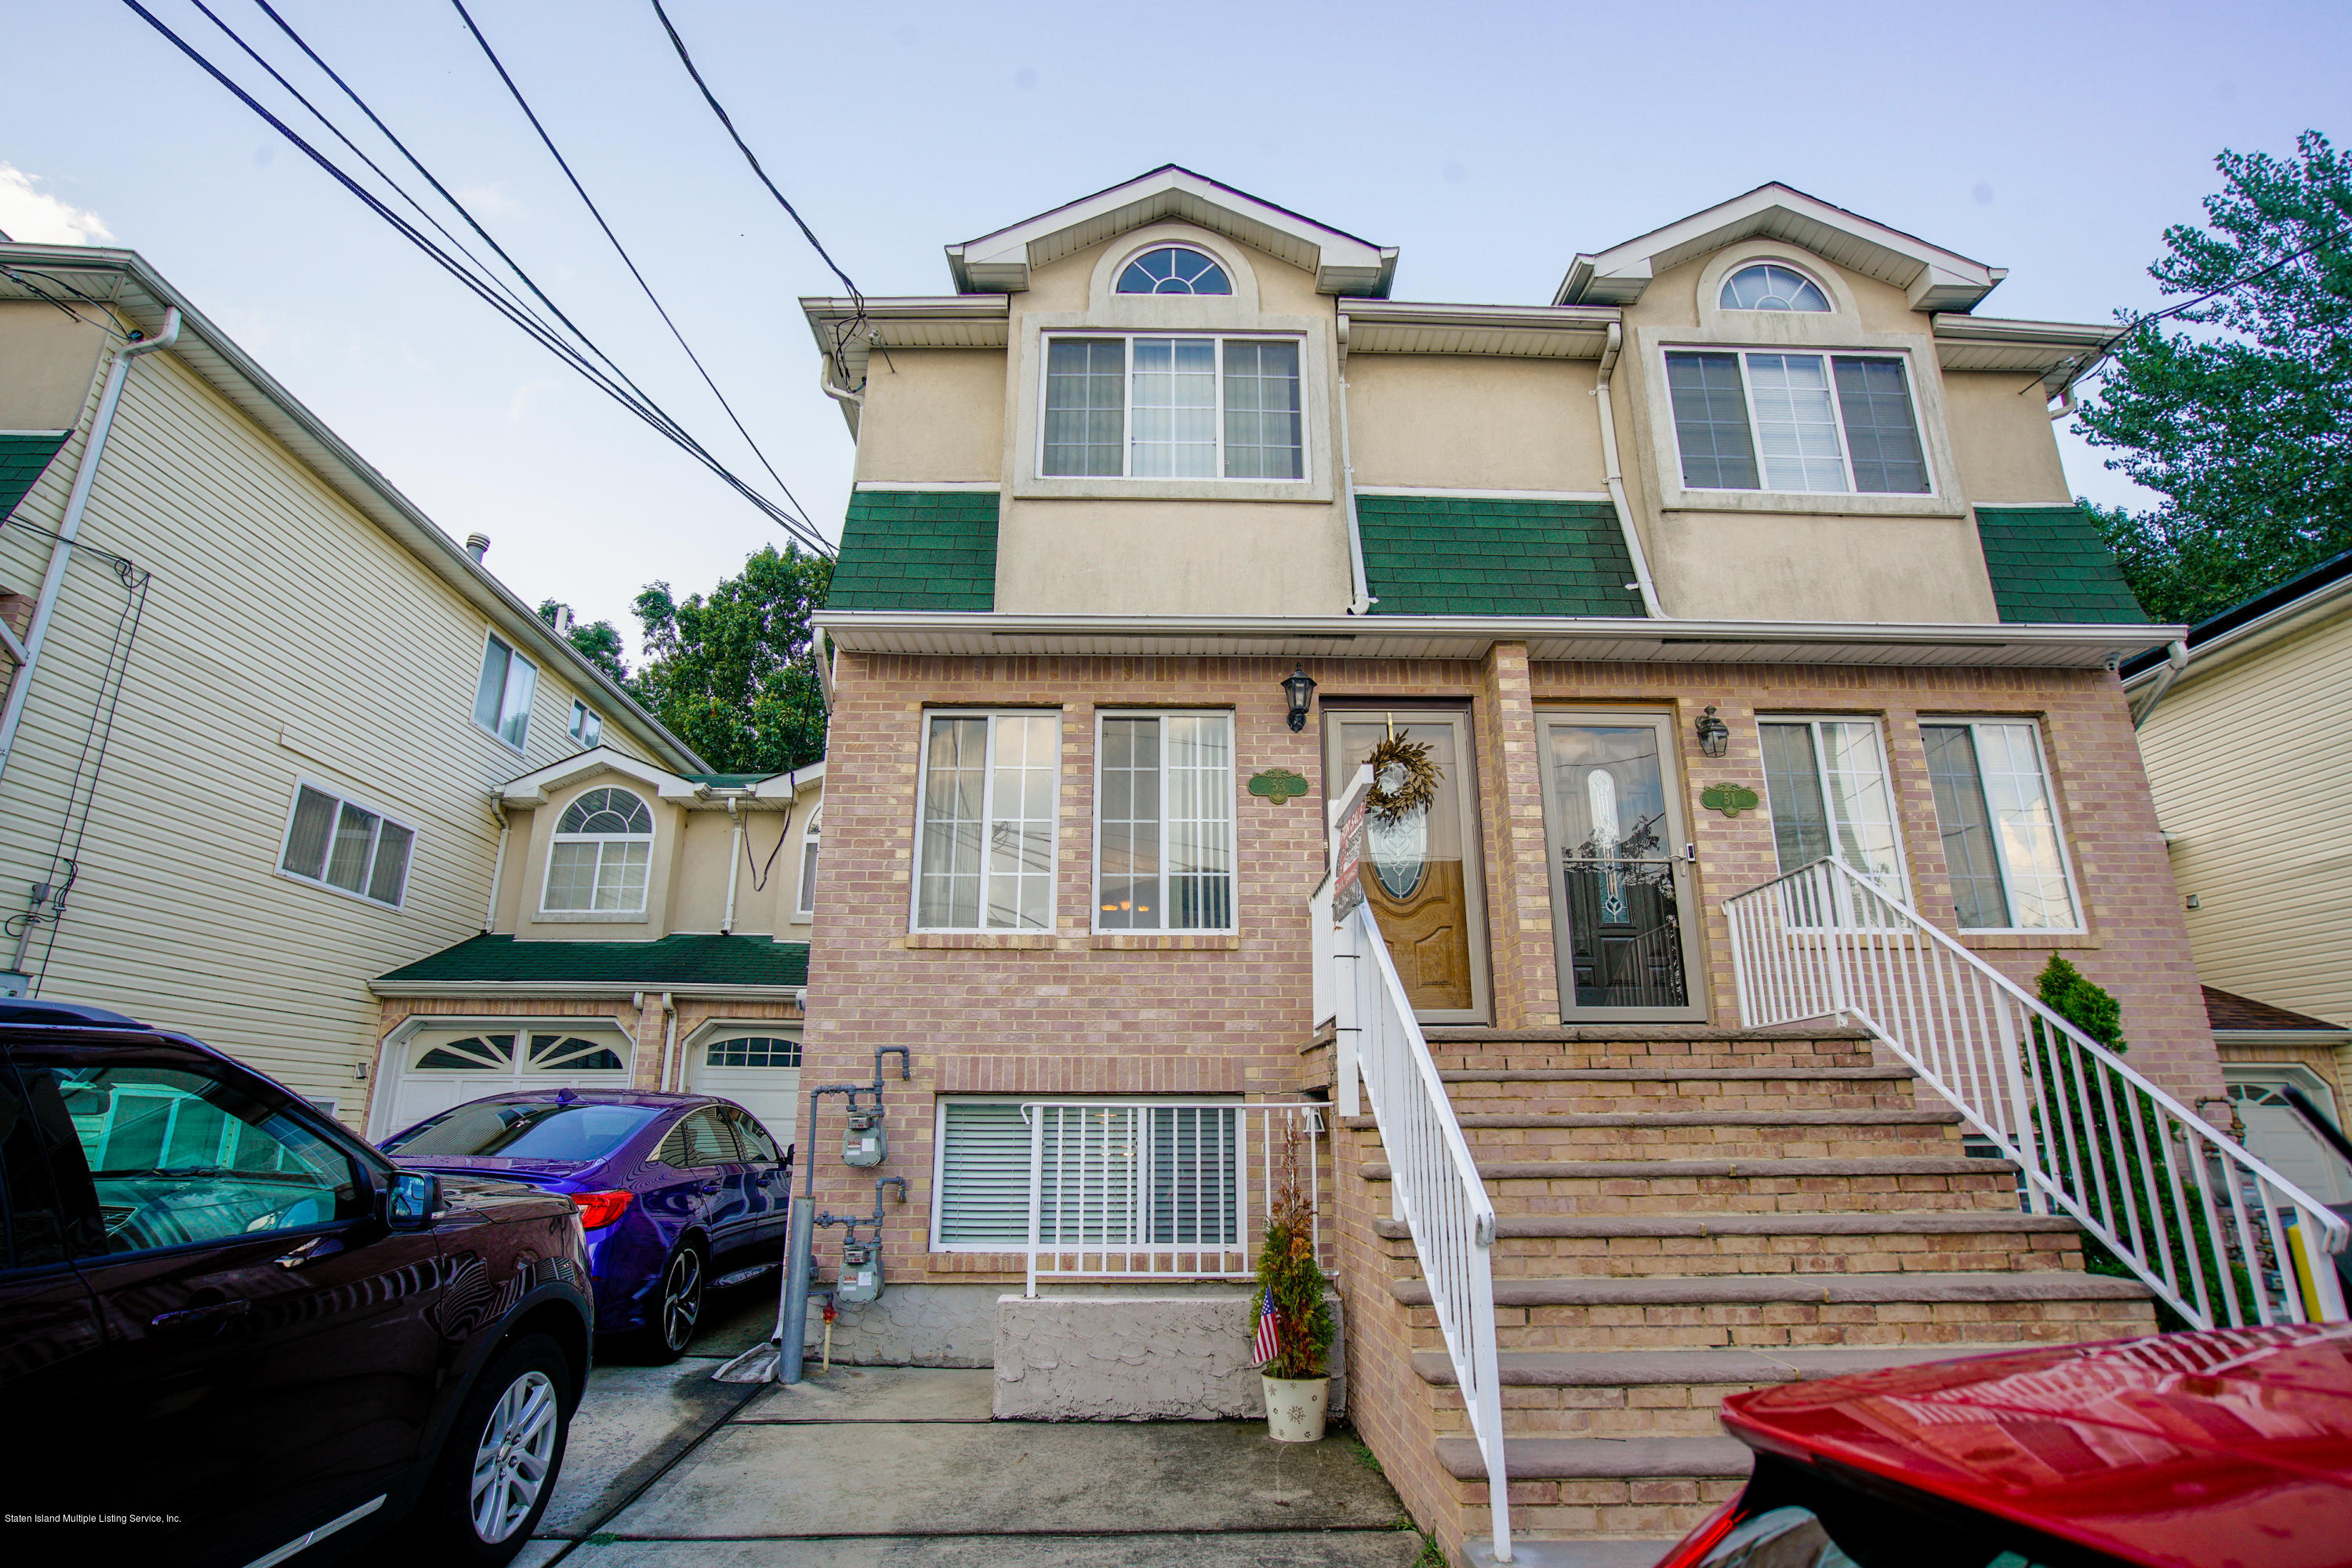 Two Family - Attached 53 Pheasant Lane  Staten Island, NY 10309, MLS-1139234-2